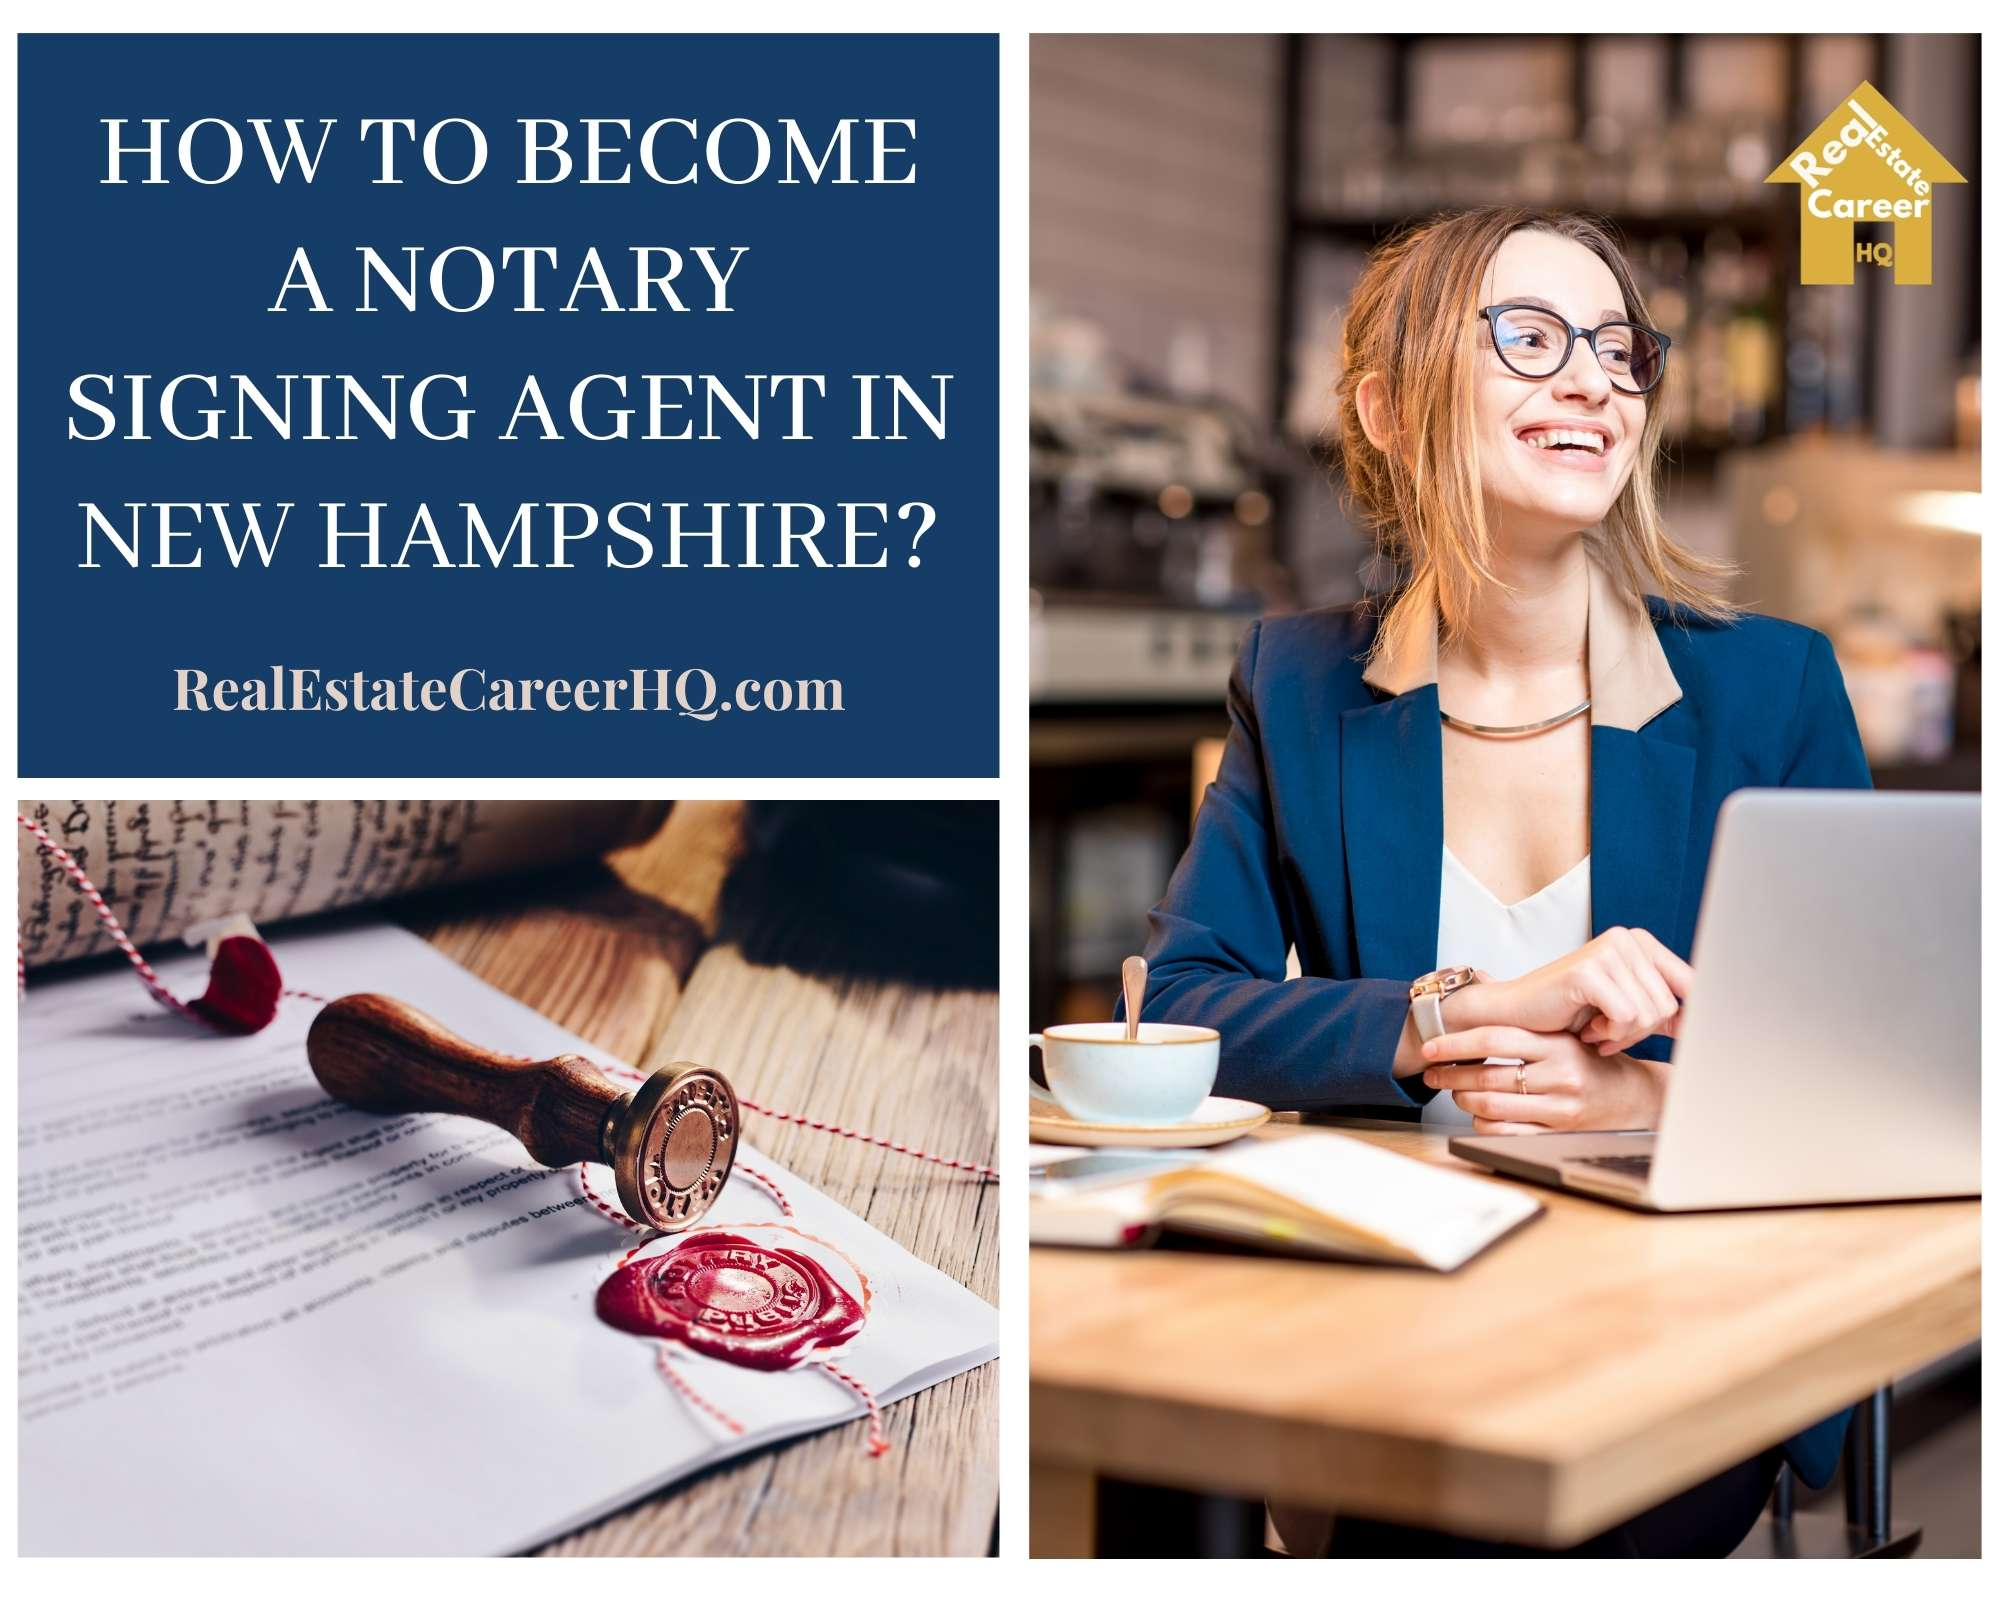 How to Become a Notary Signing Agent in New Hampshire